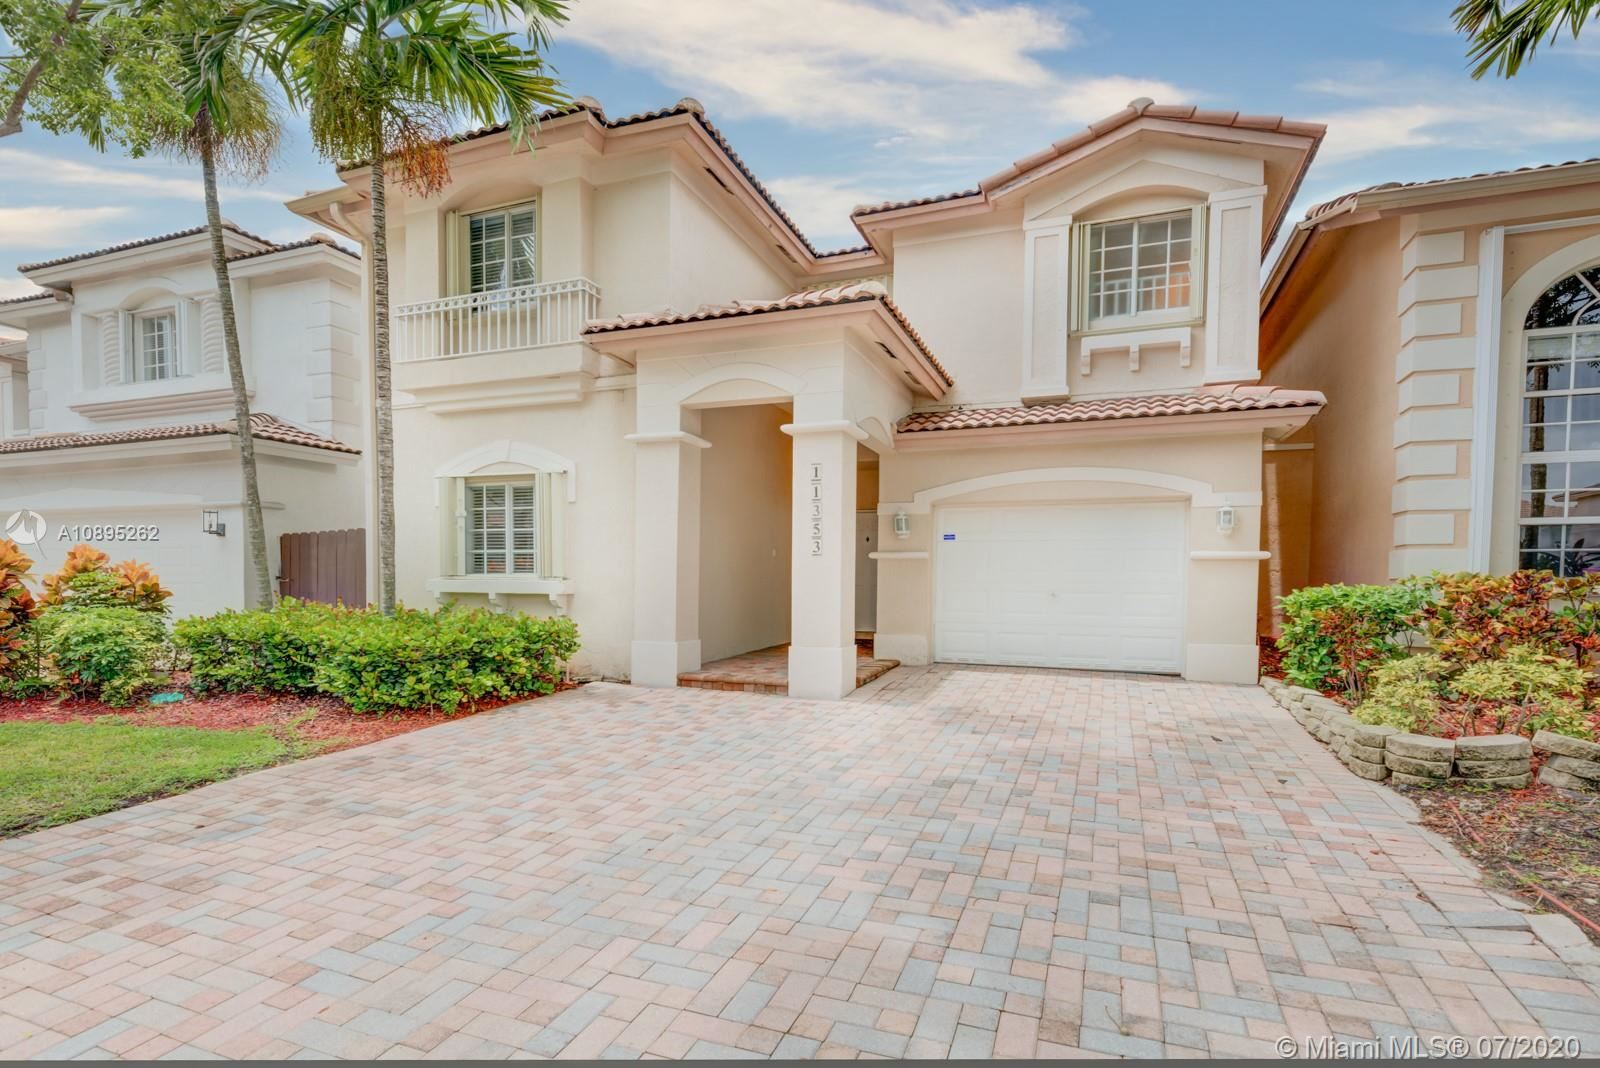 11353 NW 73rd Ter, Doral, FL 33178 - #: A10895262